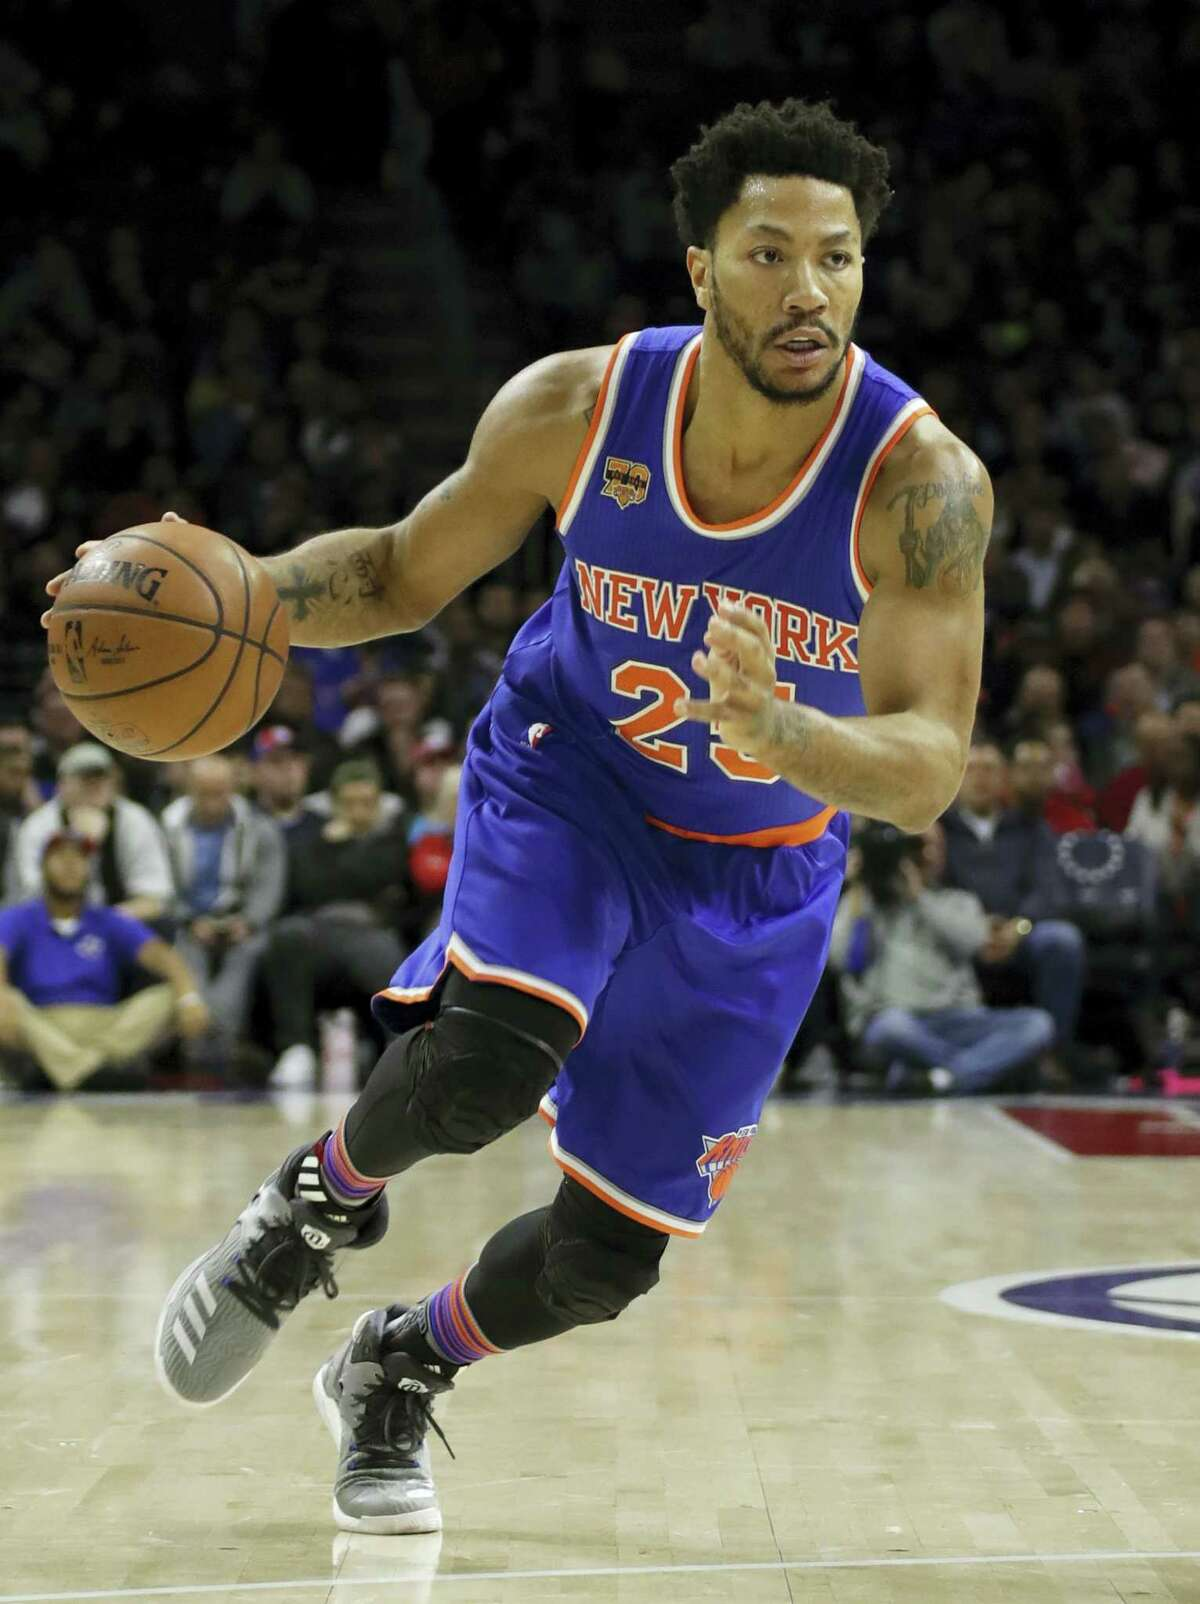 In this March 3, 2017 photo, New York Knicks' Derrick Rose drives down court during an NBA basketball game against the Philadelphia 76ers, in Philadelphia. Two people familiar with the negotiations say former MVP Derrick Rose is meeting with the Cleveland Cavaliers. Rose is discussing a potential contract with Cleveland on Monday, July 24, 2017, according to the people who spoke to The Associated Press on condition of anonymity because of the sensitive nature of the talks.